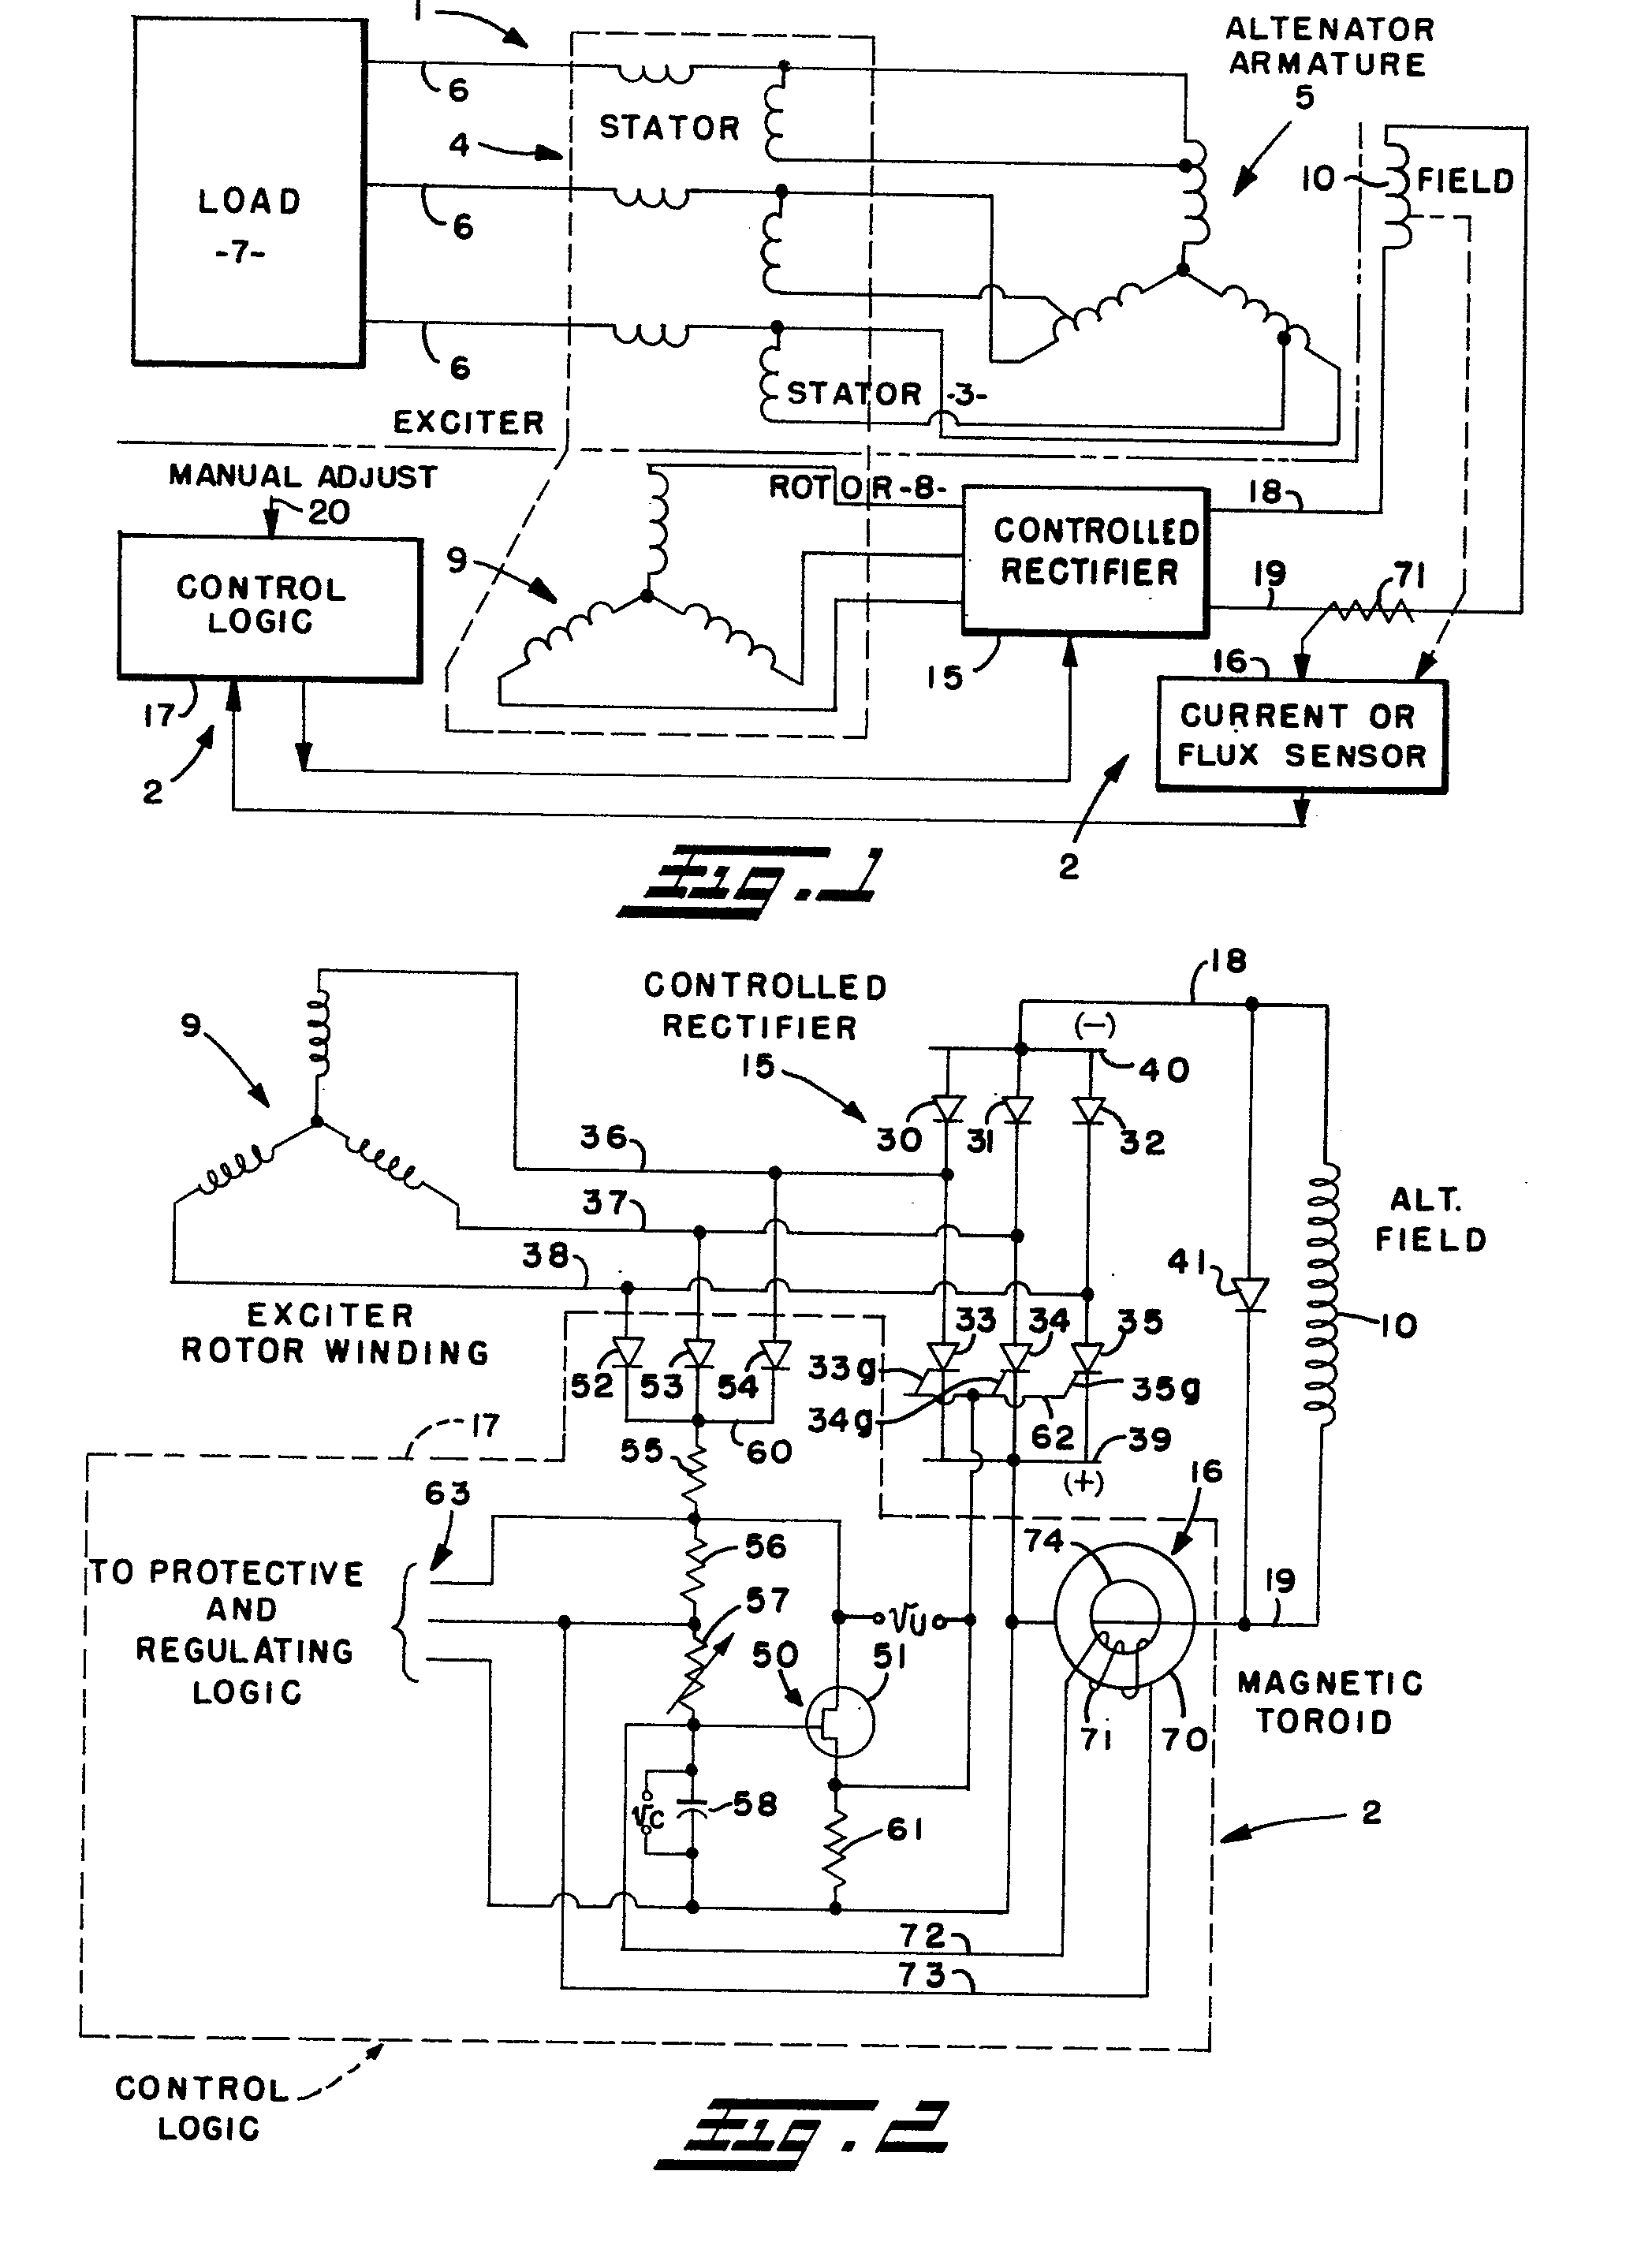 Wiring Diagram Sie 1f1r025 - Mustart.us on 3 phase generator diagram, 3 phase cable, 3 phase regulator, 3 phase block diagram, 3 phase converter diagram, 3 phase relay, 3 phase connector diagram, 3 phase coil diagram, 3 phase thermostat diagram, 3 phase electricity diagram, 3 phase motor connection diagram, 3 phase inverter diagram, 3 phase wire, 3 phase schematic diagrams, 3 phase plug, 3 phase transformers diagram, 3 phase electric panel diagrams, ceiling fan installation diagram, 3 phase circuit, 3 phase power,